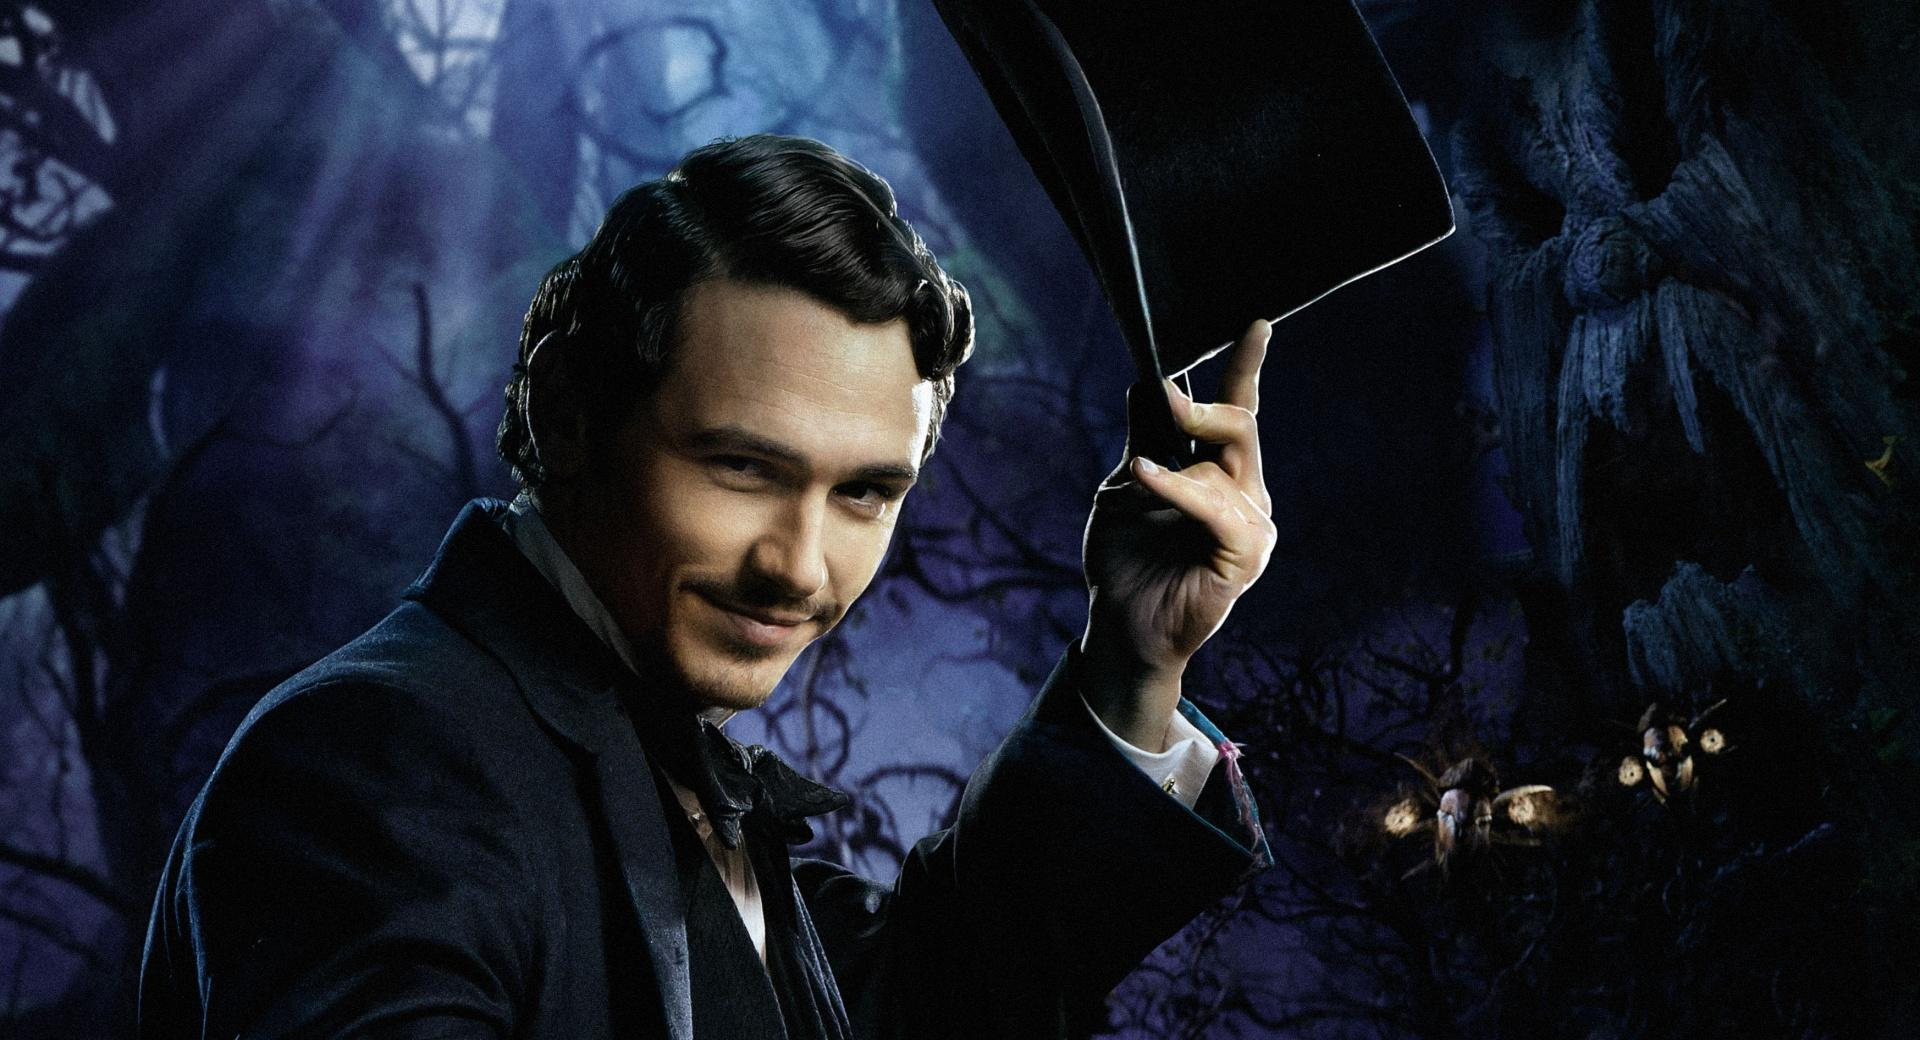 Oz the Great and Powerful - OZ wallpapers HD quality